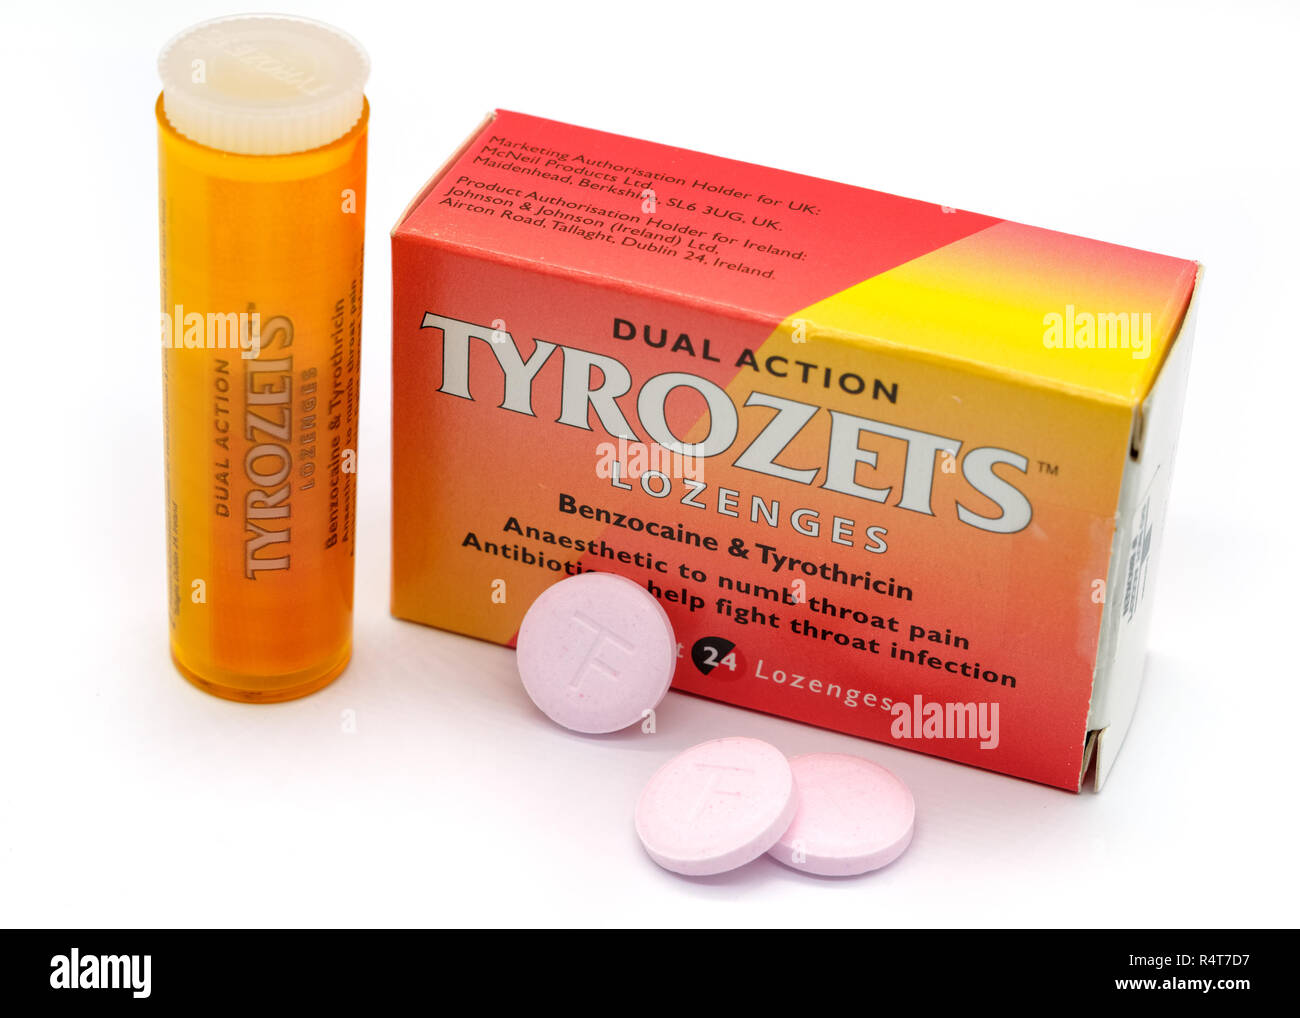 Largs, Scotland, UK - November 22, 2018: Tyrozets Branded Throat Lozenges in Recyclable Packaging in line with current UK guidelines and Isolated on W - Stock Image